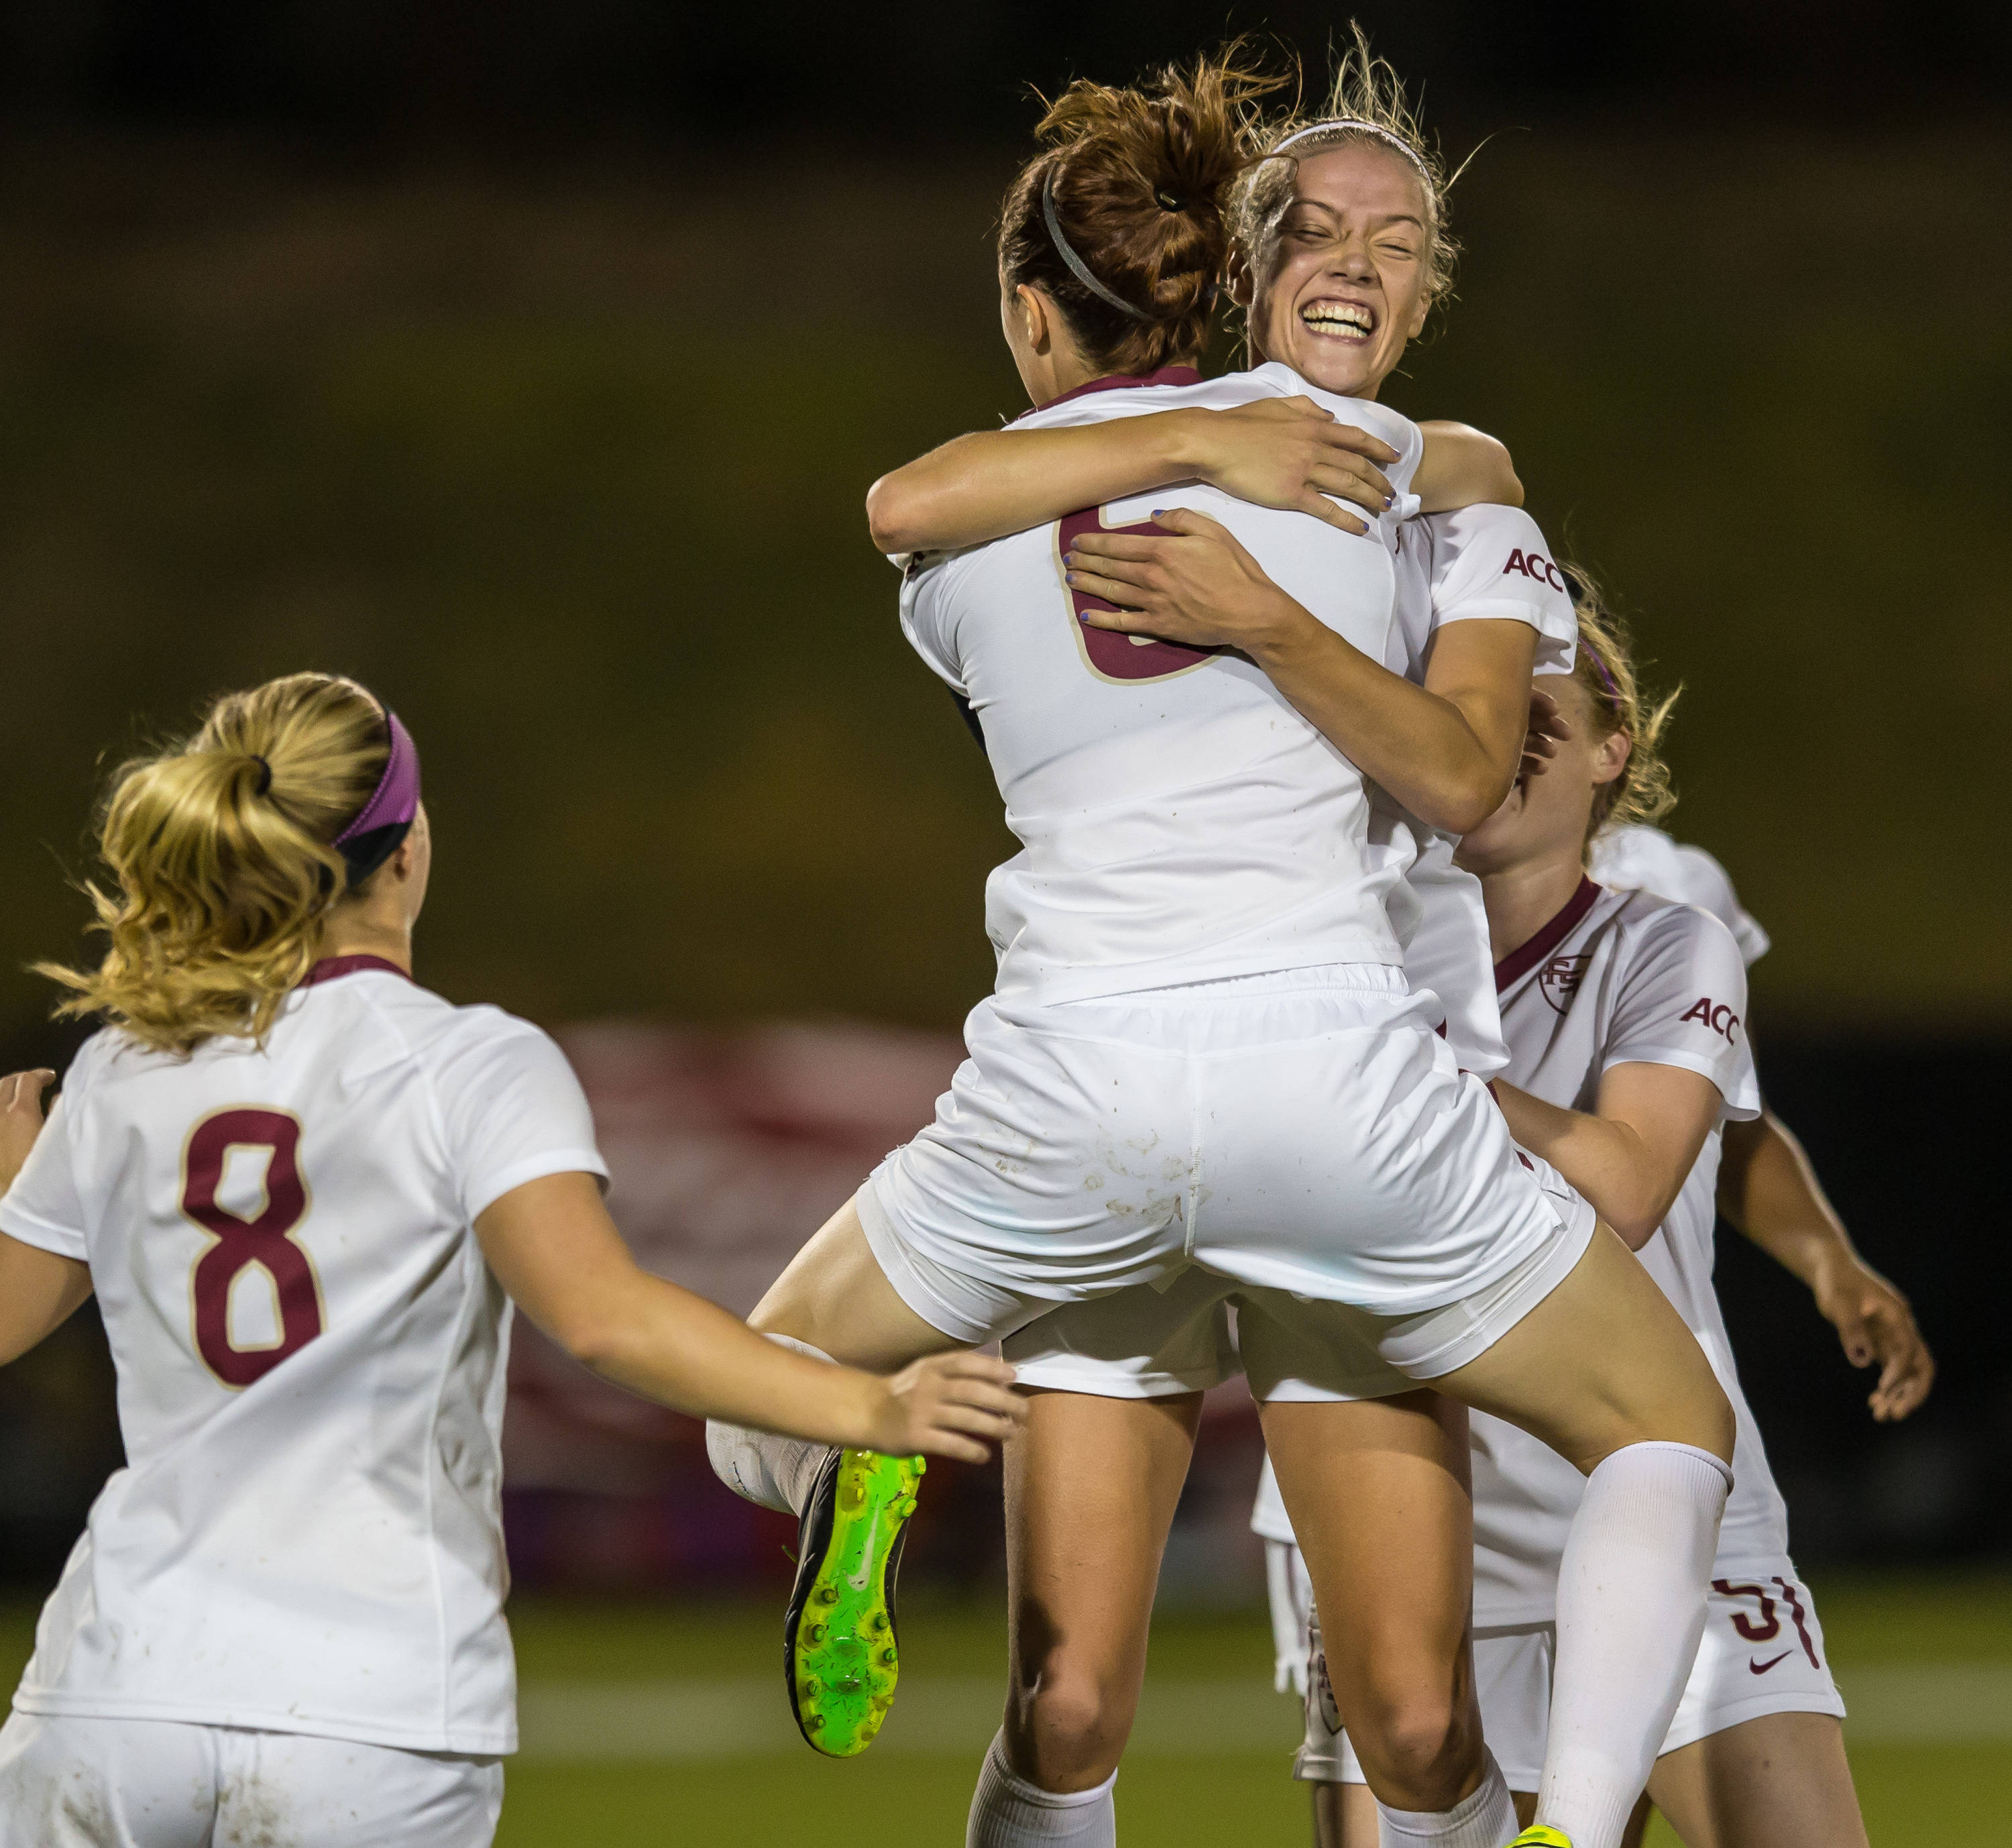 Dagny Brynjarsdottir (7)and Megan Campbell (6) celebrate Dagny's game clinching goal.  The score was set up by a crossing pass from Campbell.